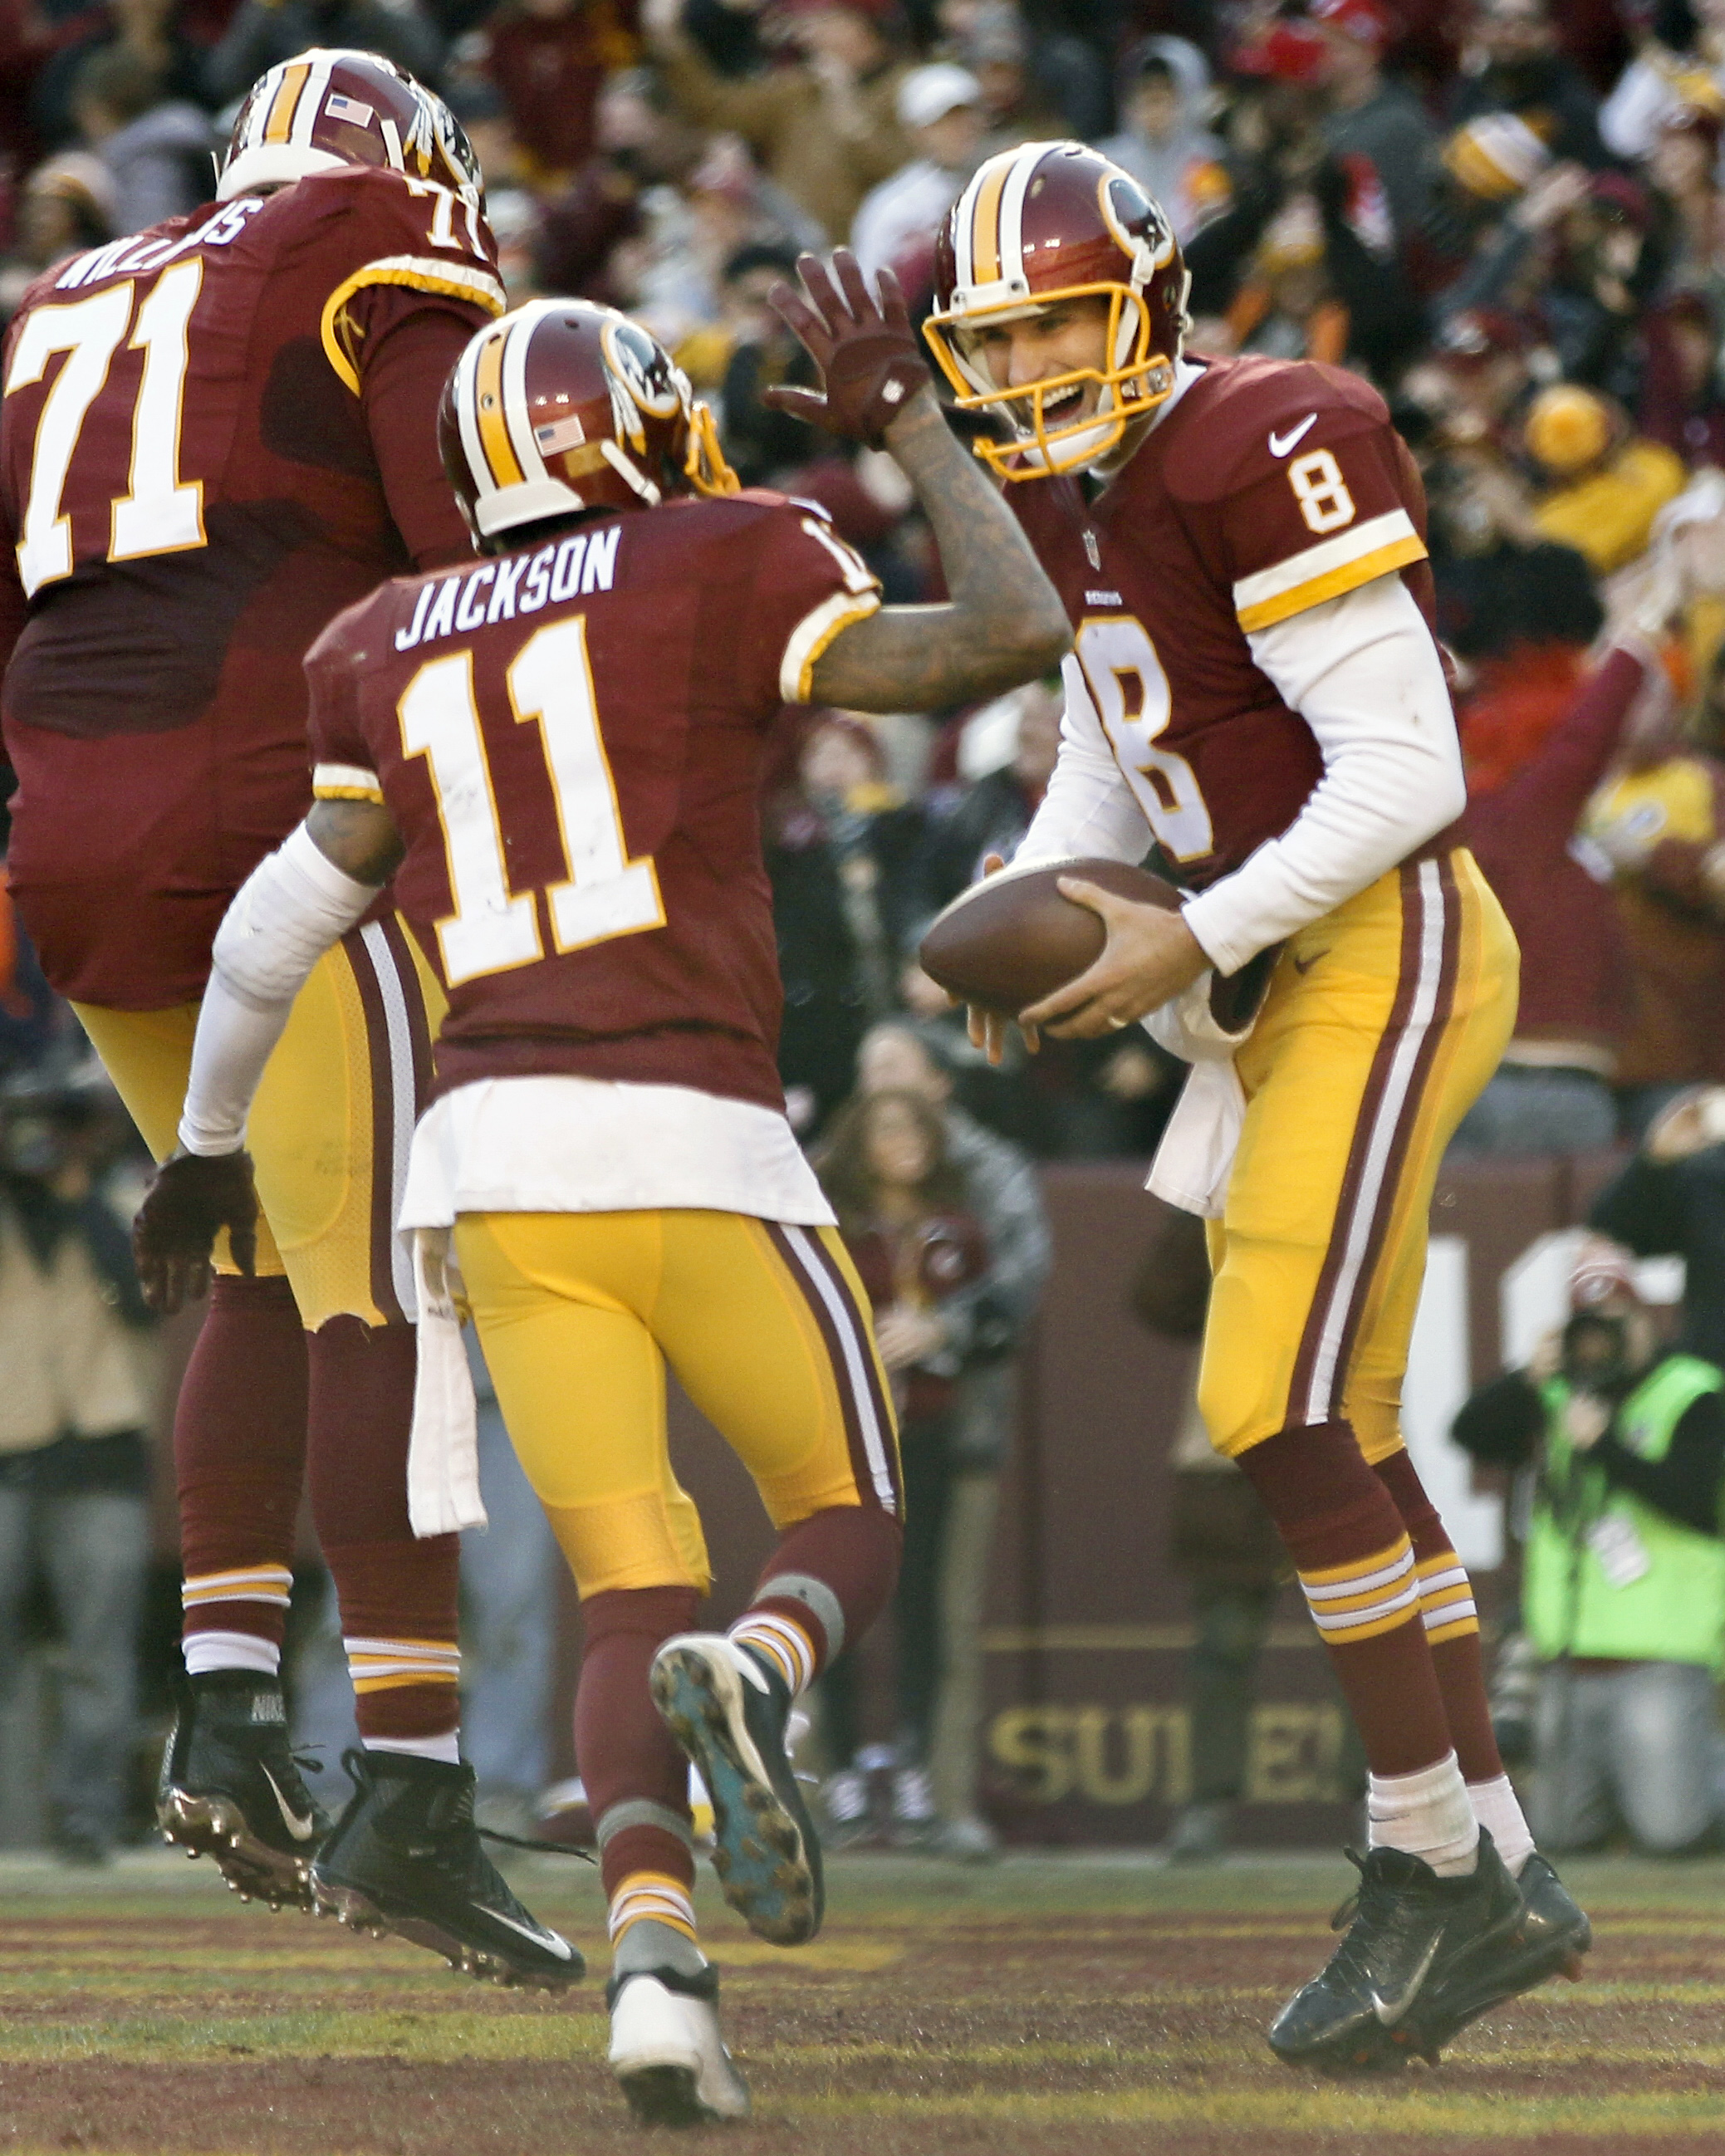 Cousins asked 'You like that?!' After 2 straight wins, Redskins fans do